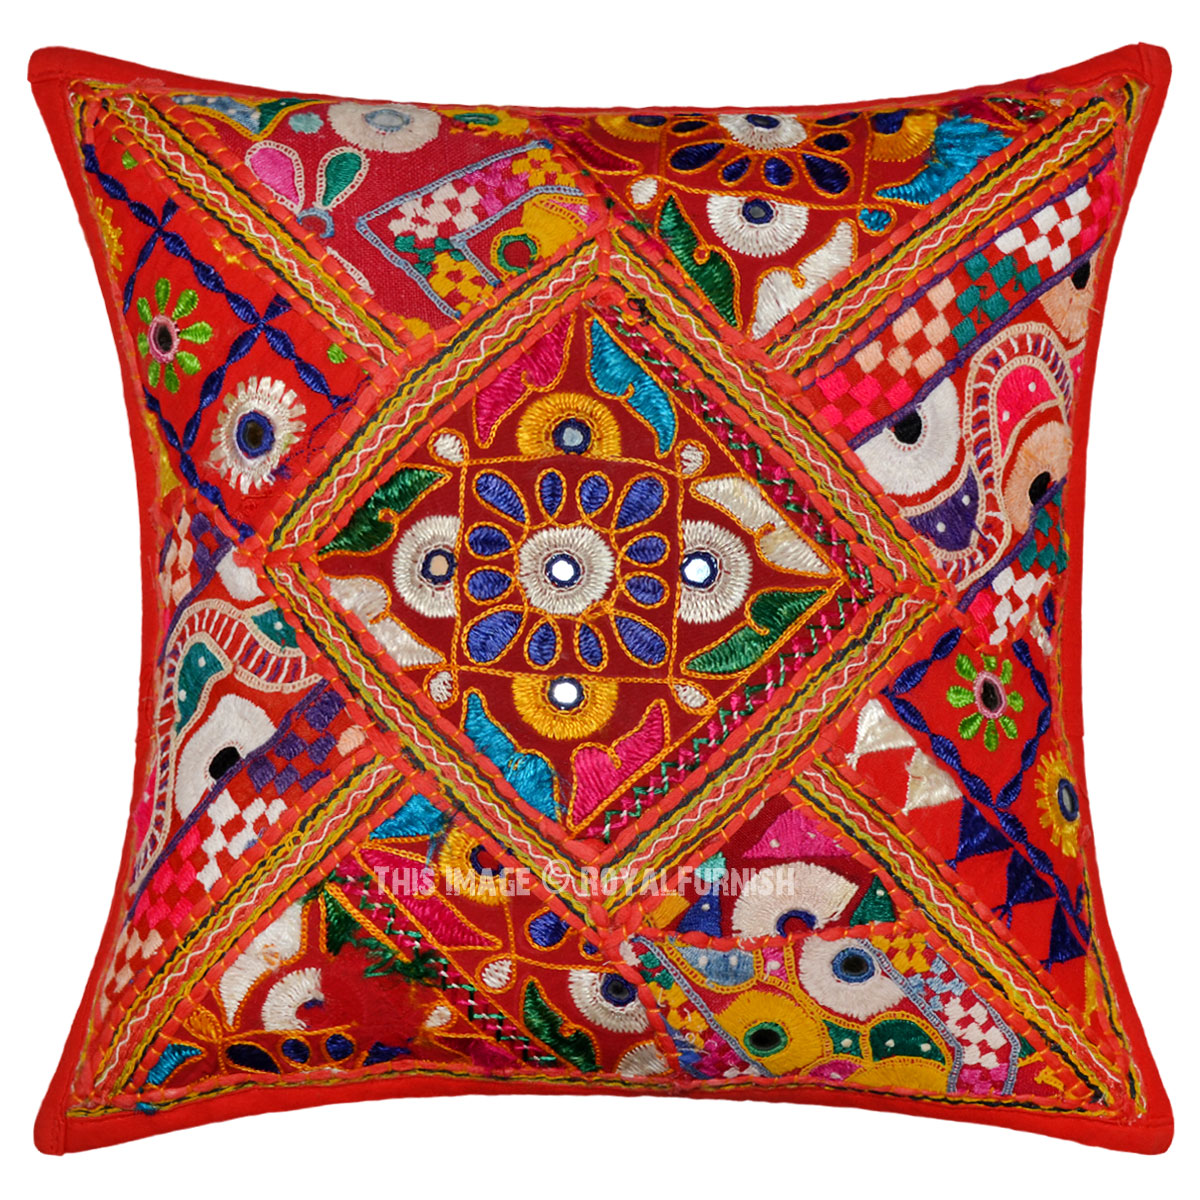 Unique Decorative Throw Pillows : Red Small Floral Unique One-Of-A-Kind Decorative Embroidered Pillow Sham - RoyalFurnish.com